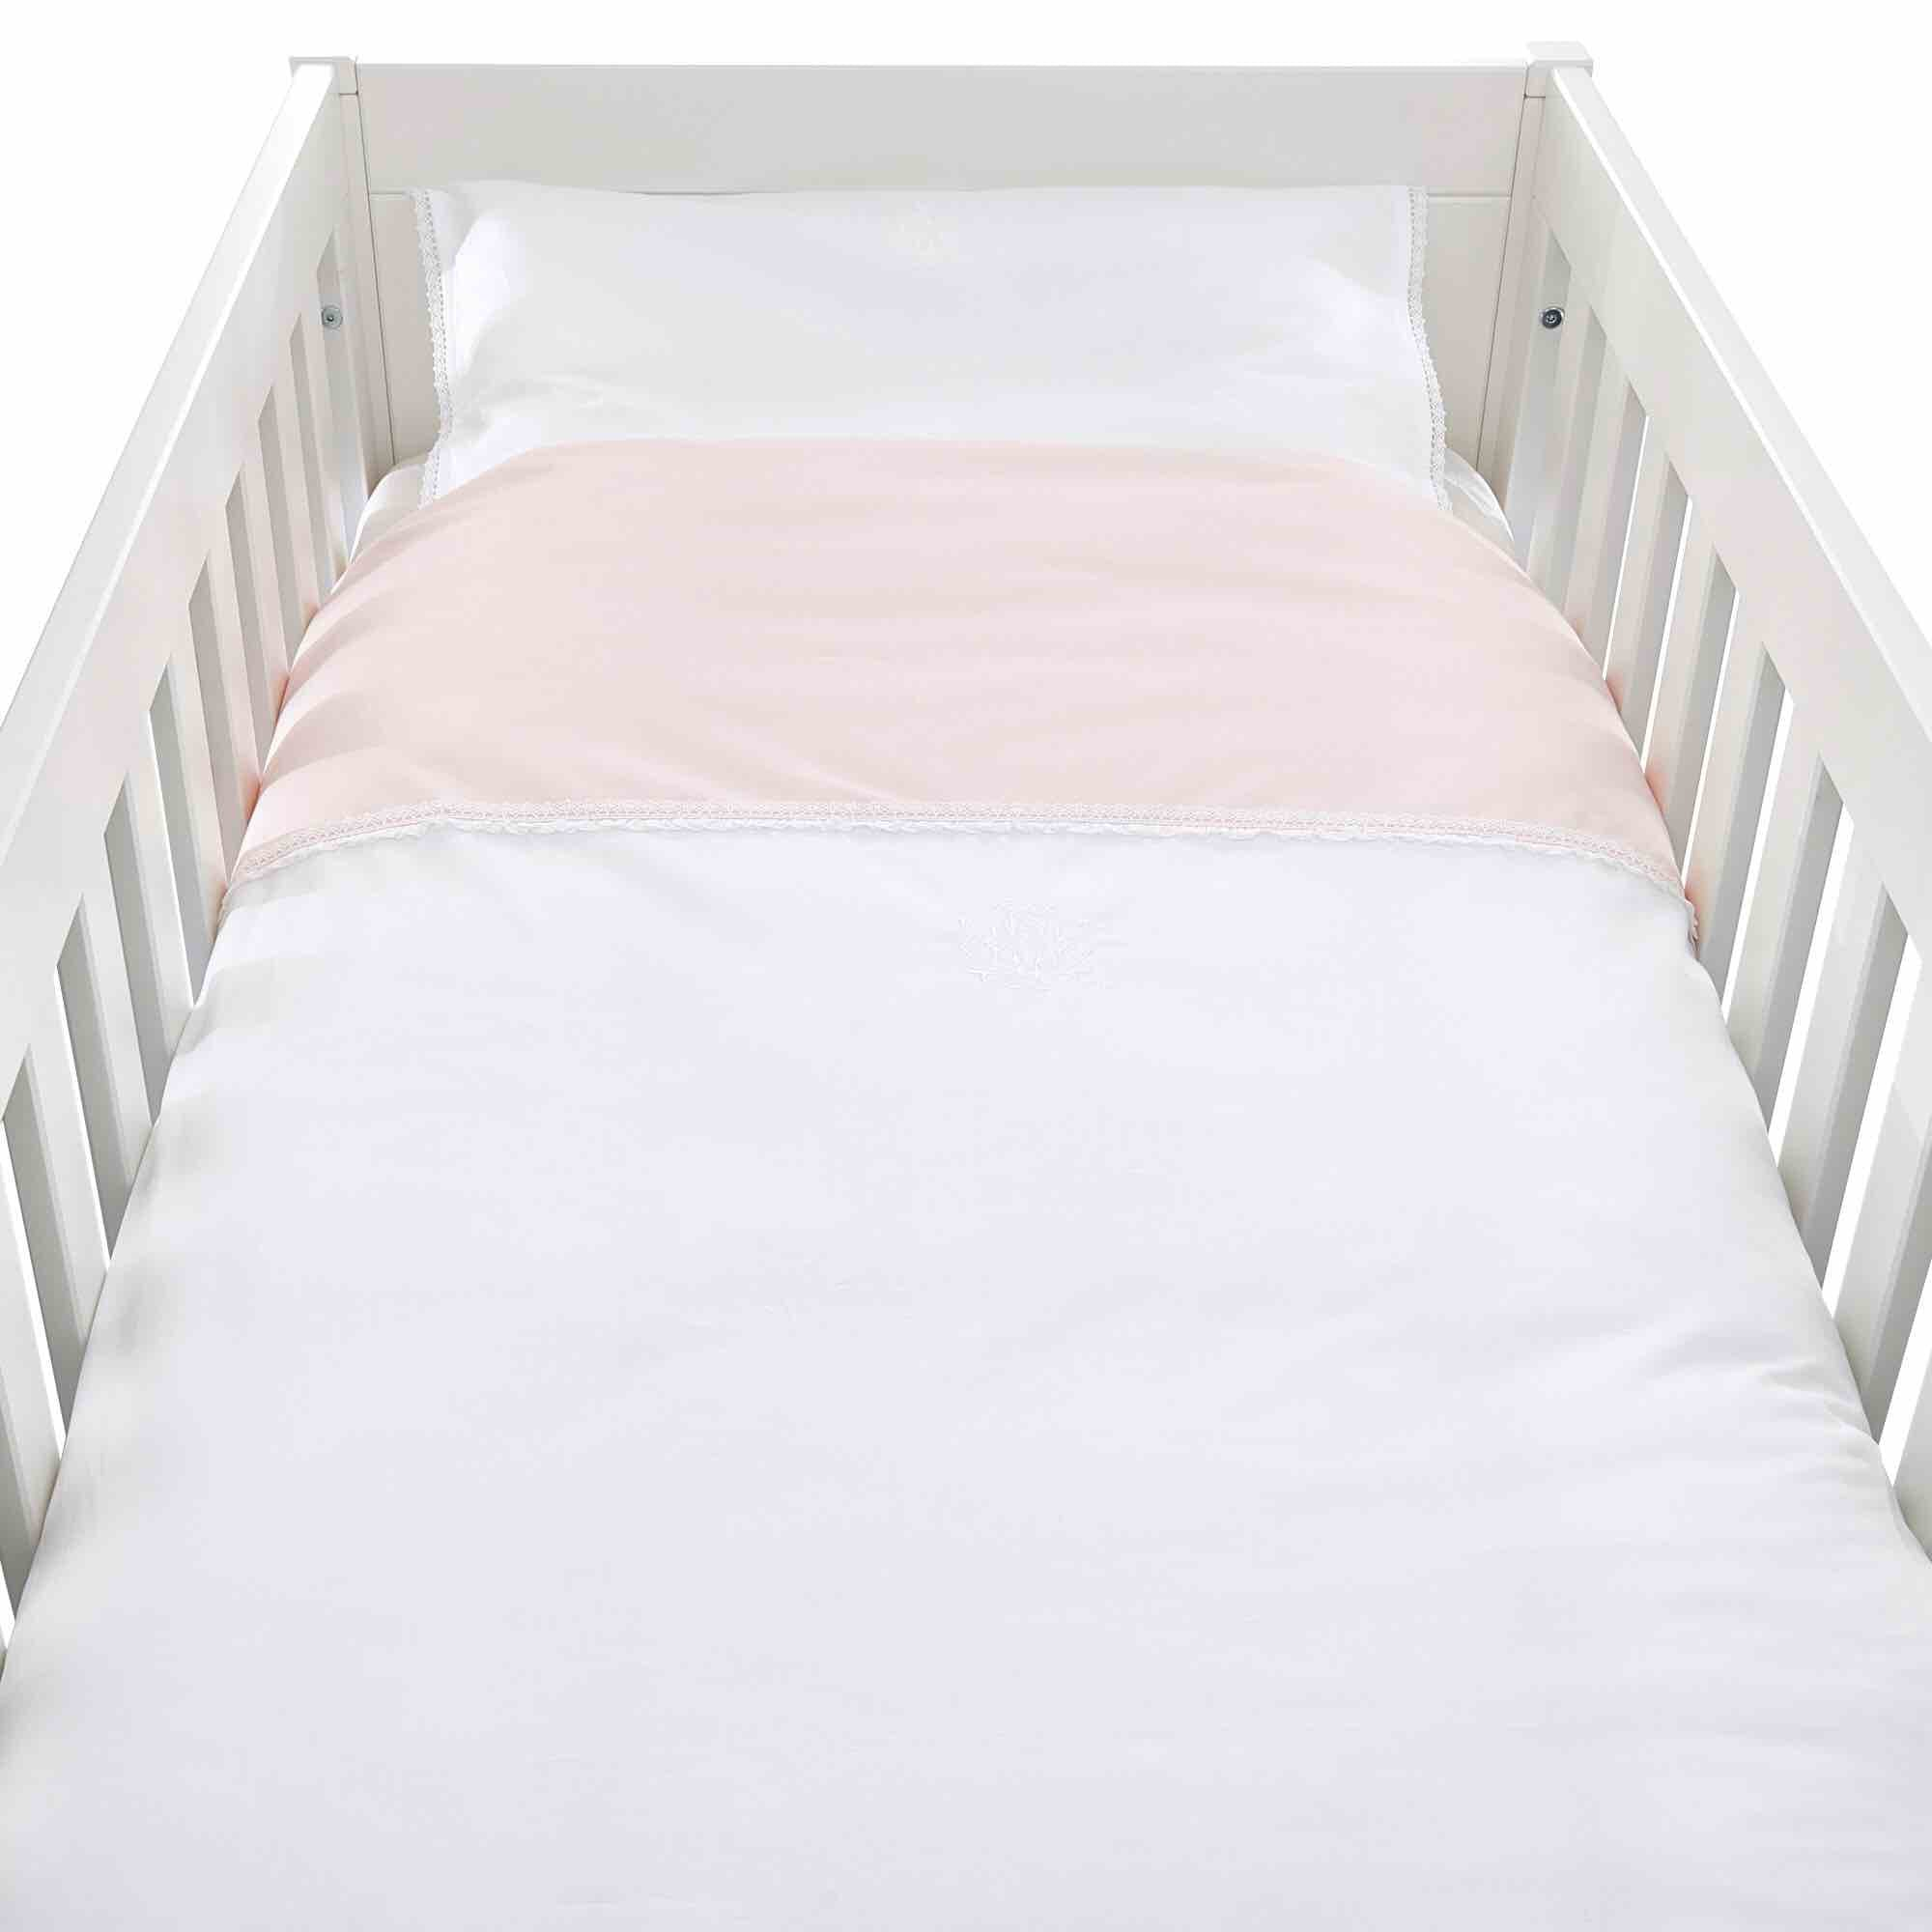 Theophile & Patachou Cot Bed Duvet Cover - Royal Pink